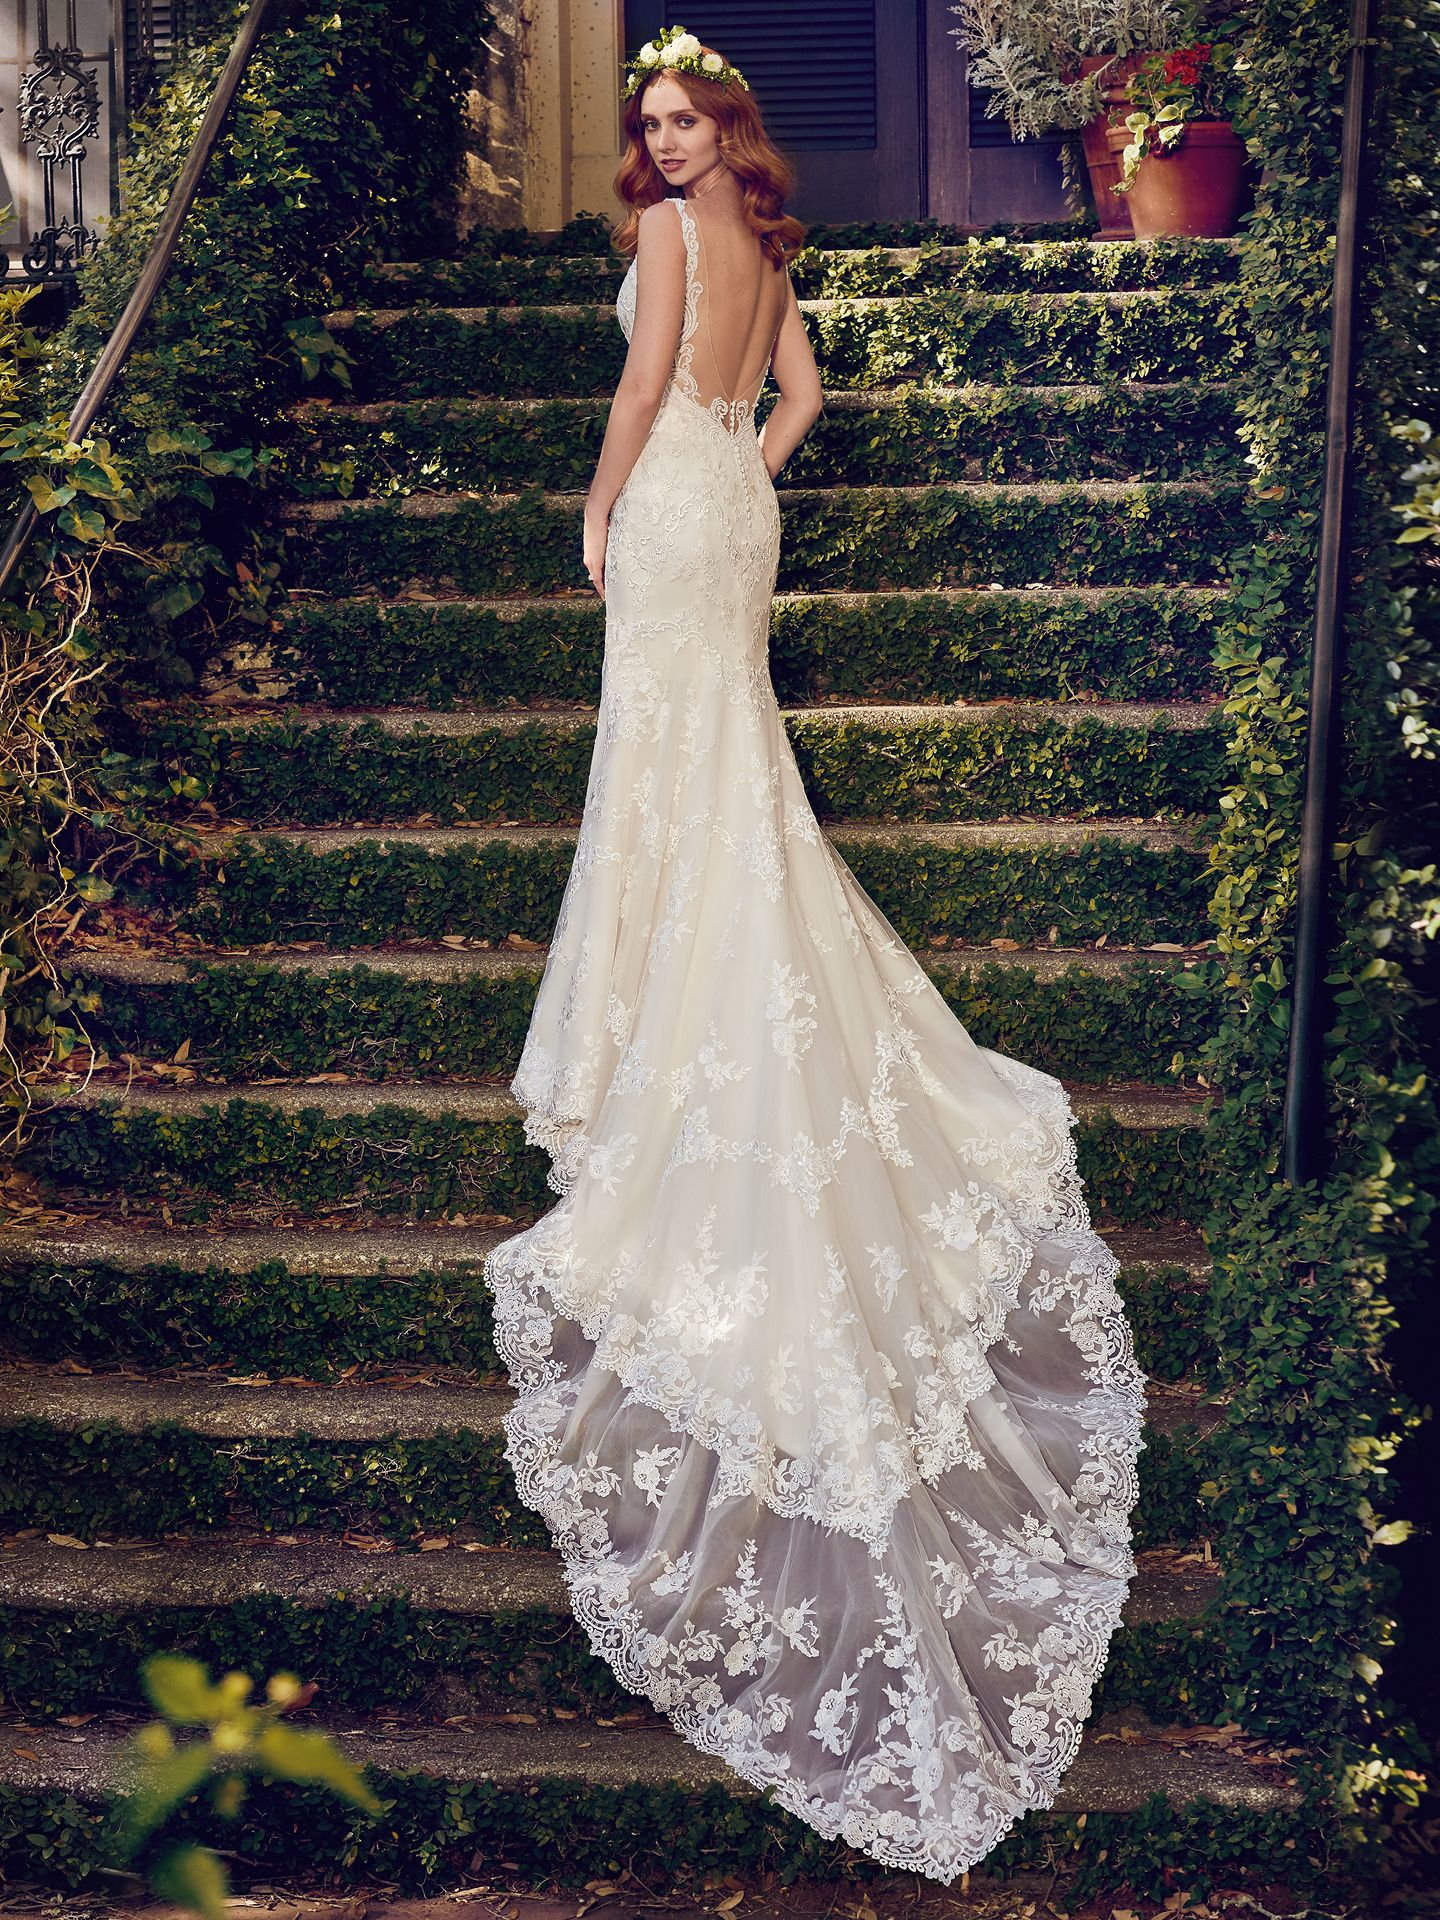 Zamara wedding dress features shimmering lace motifs adorn this tulle sheath wedding dress, completing the illusion double-train, illusion open back, V-neck, and illusion straps. - The Latest Wedding Dress Trends for Engagement Season 2018